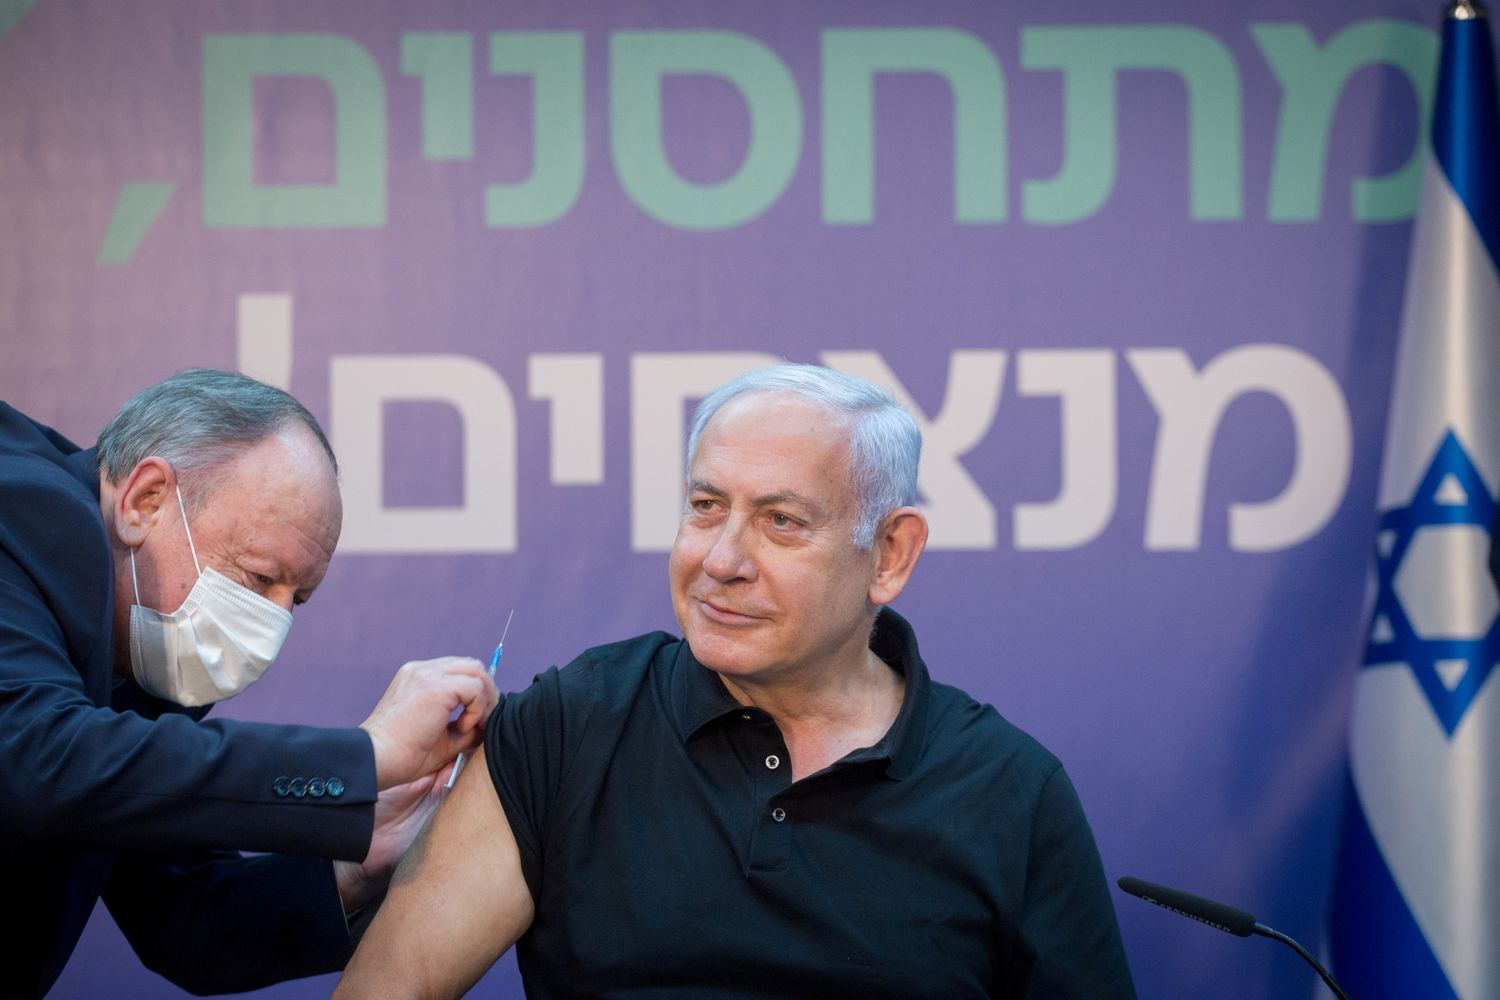 Israel sees no serious cases after Pfizer shots